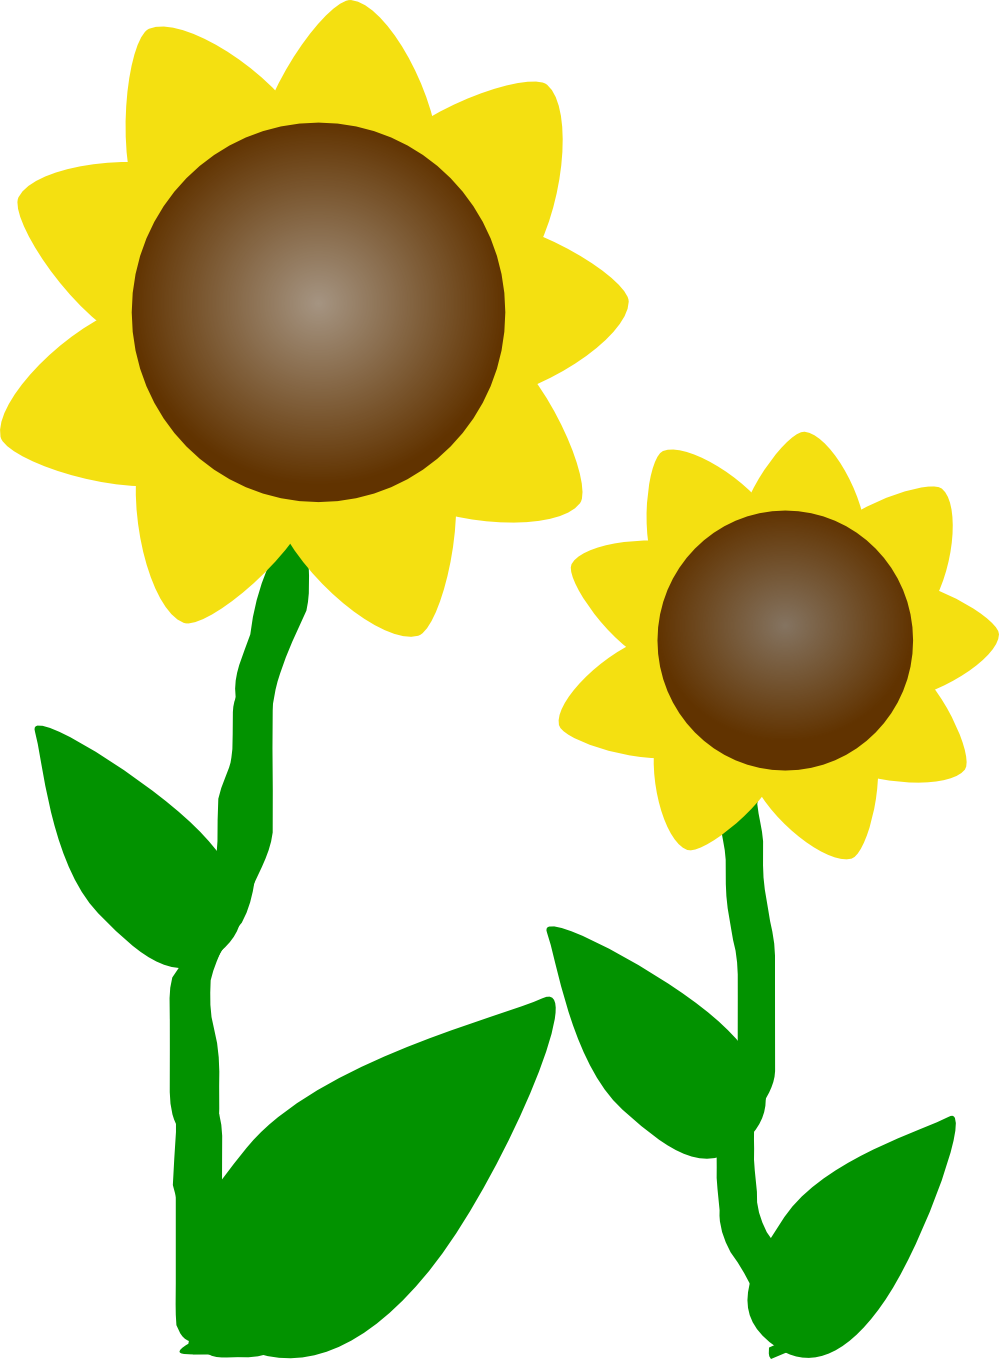 Sunflower clipart tall sunflower. Stalk image free